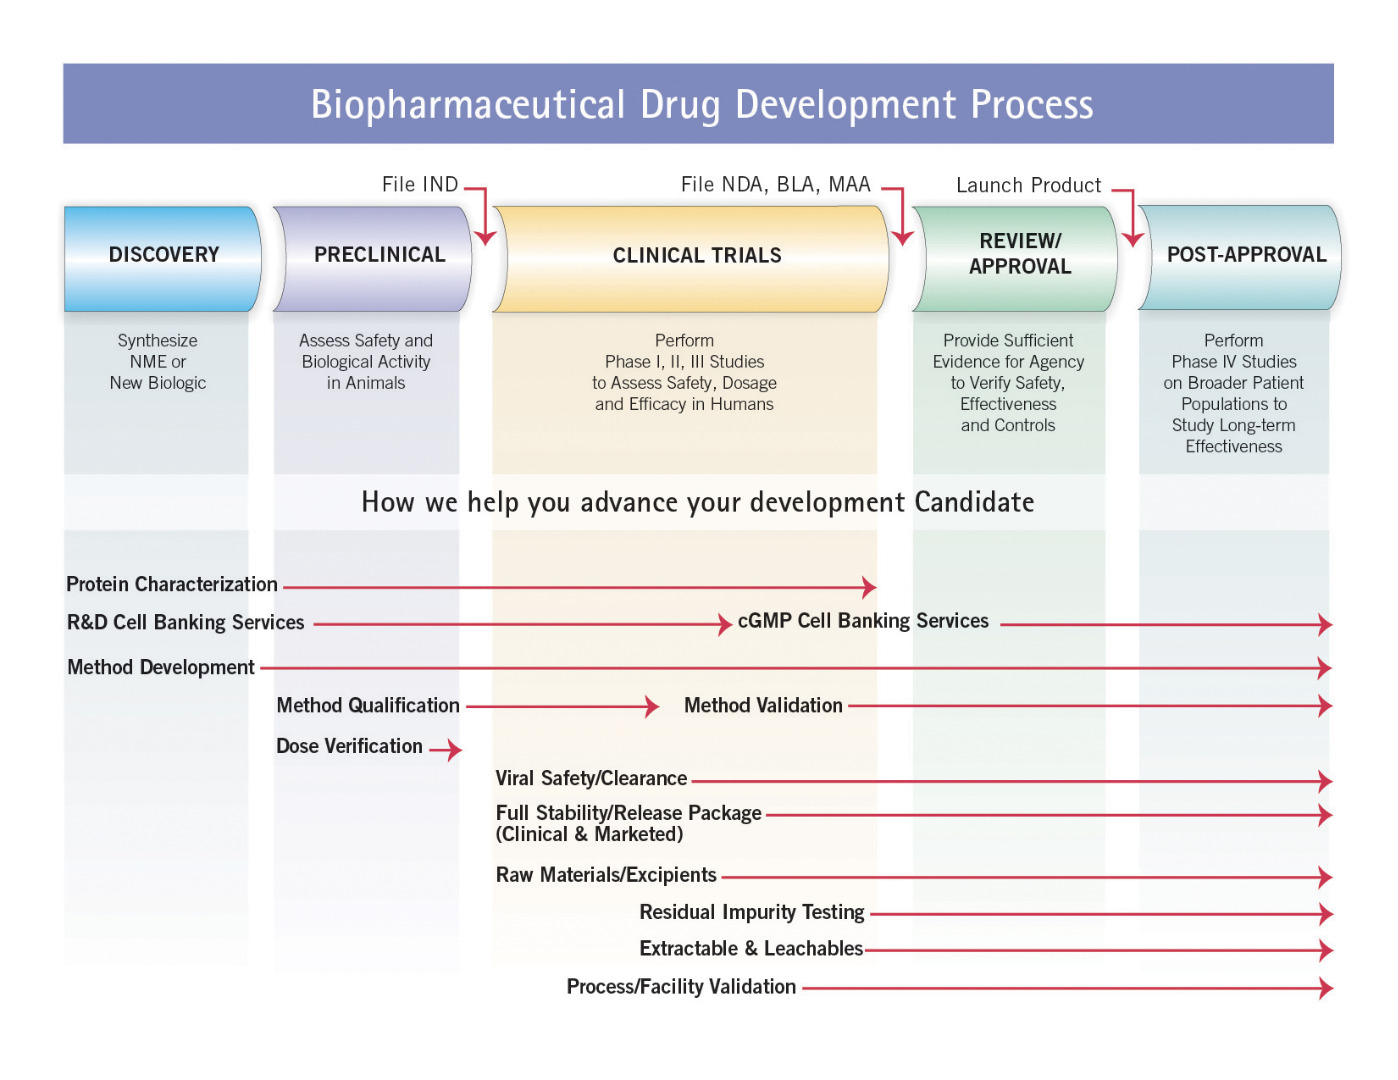 Biopharmaceutical Drug Development Process